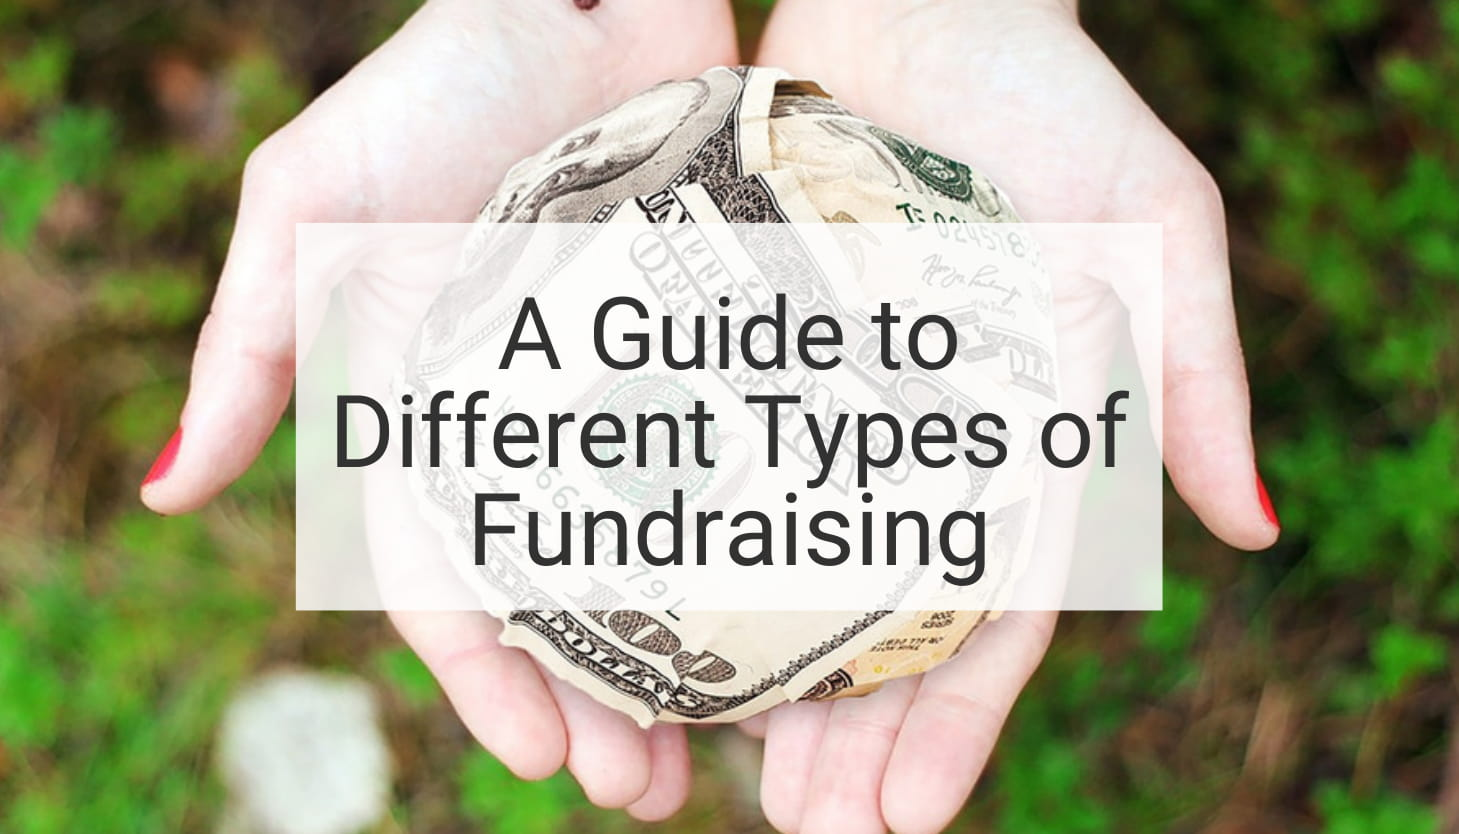 A Guide to Different Types of Fundraising: Pros and Cons